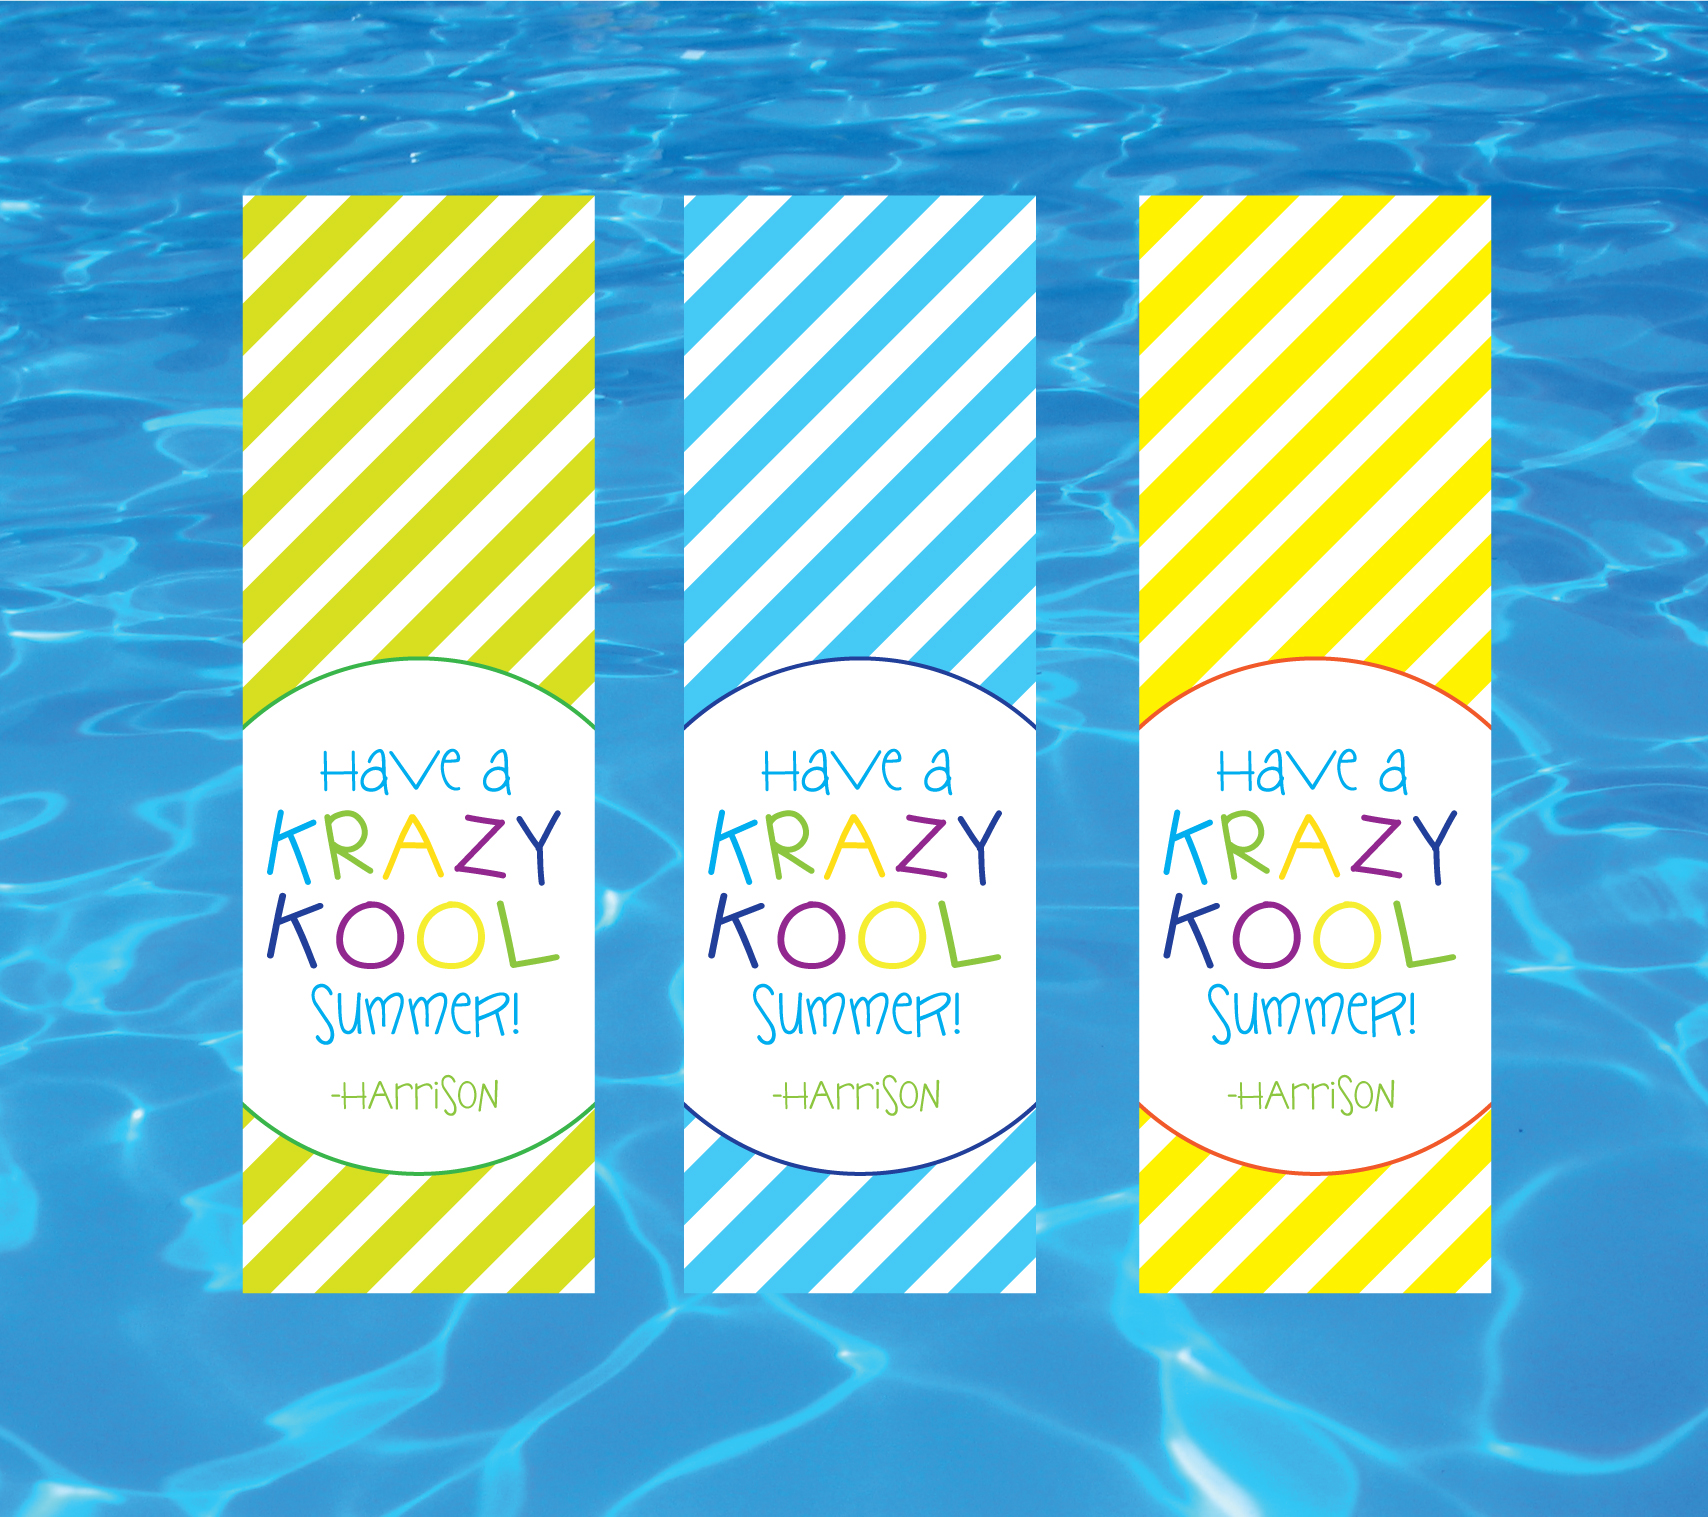 Have A Krazy Kool Summer Gift Tags Crowning Details